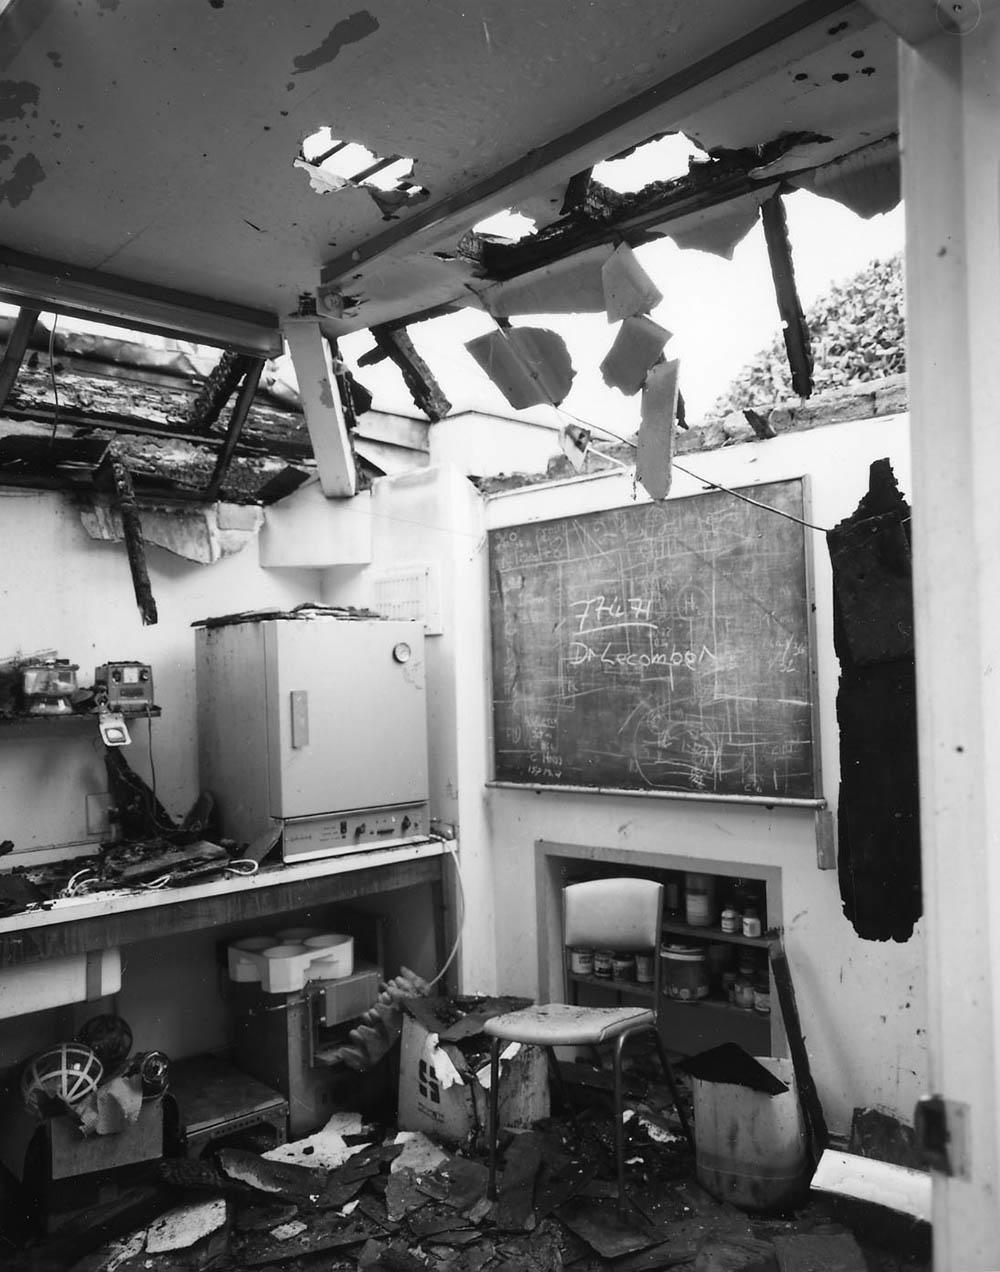 Fire damage at the University of Dundee Physics department, 1983